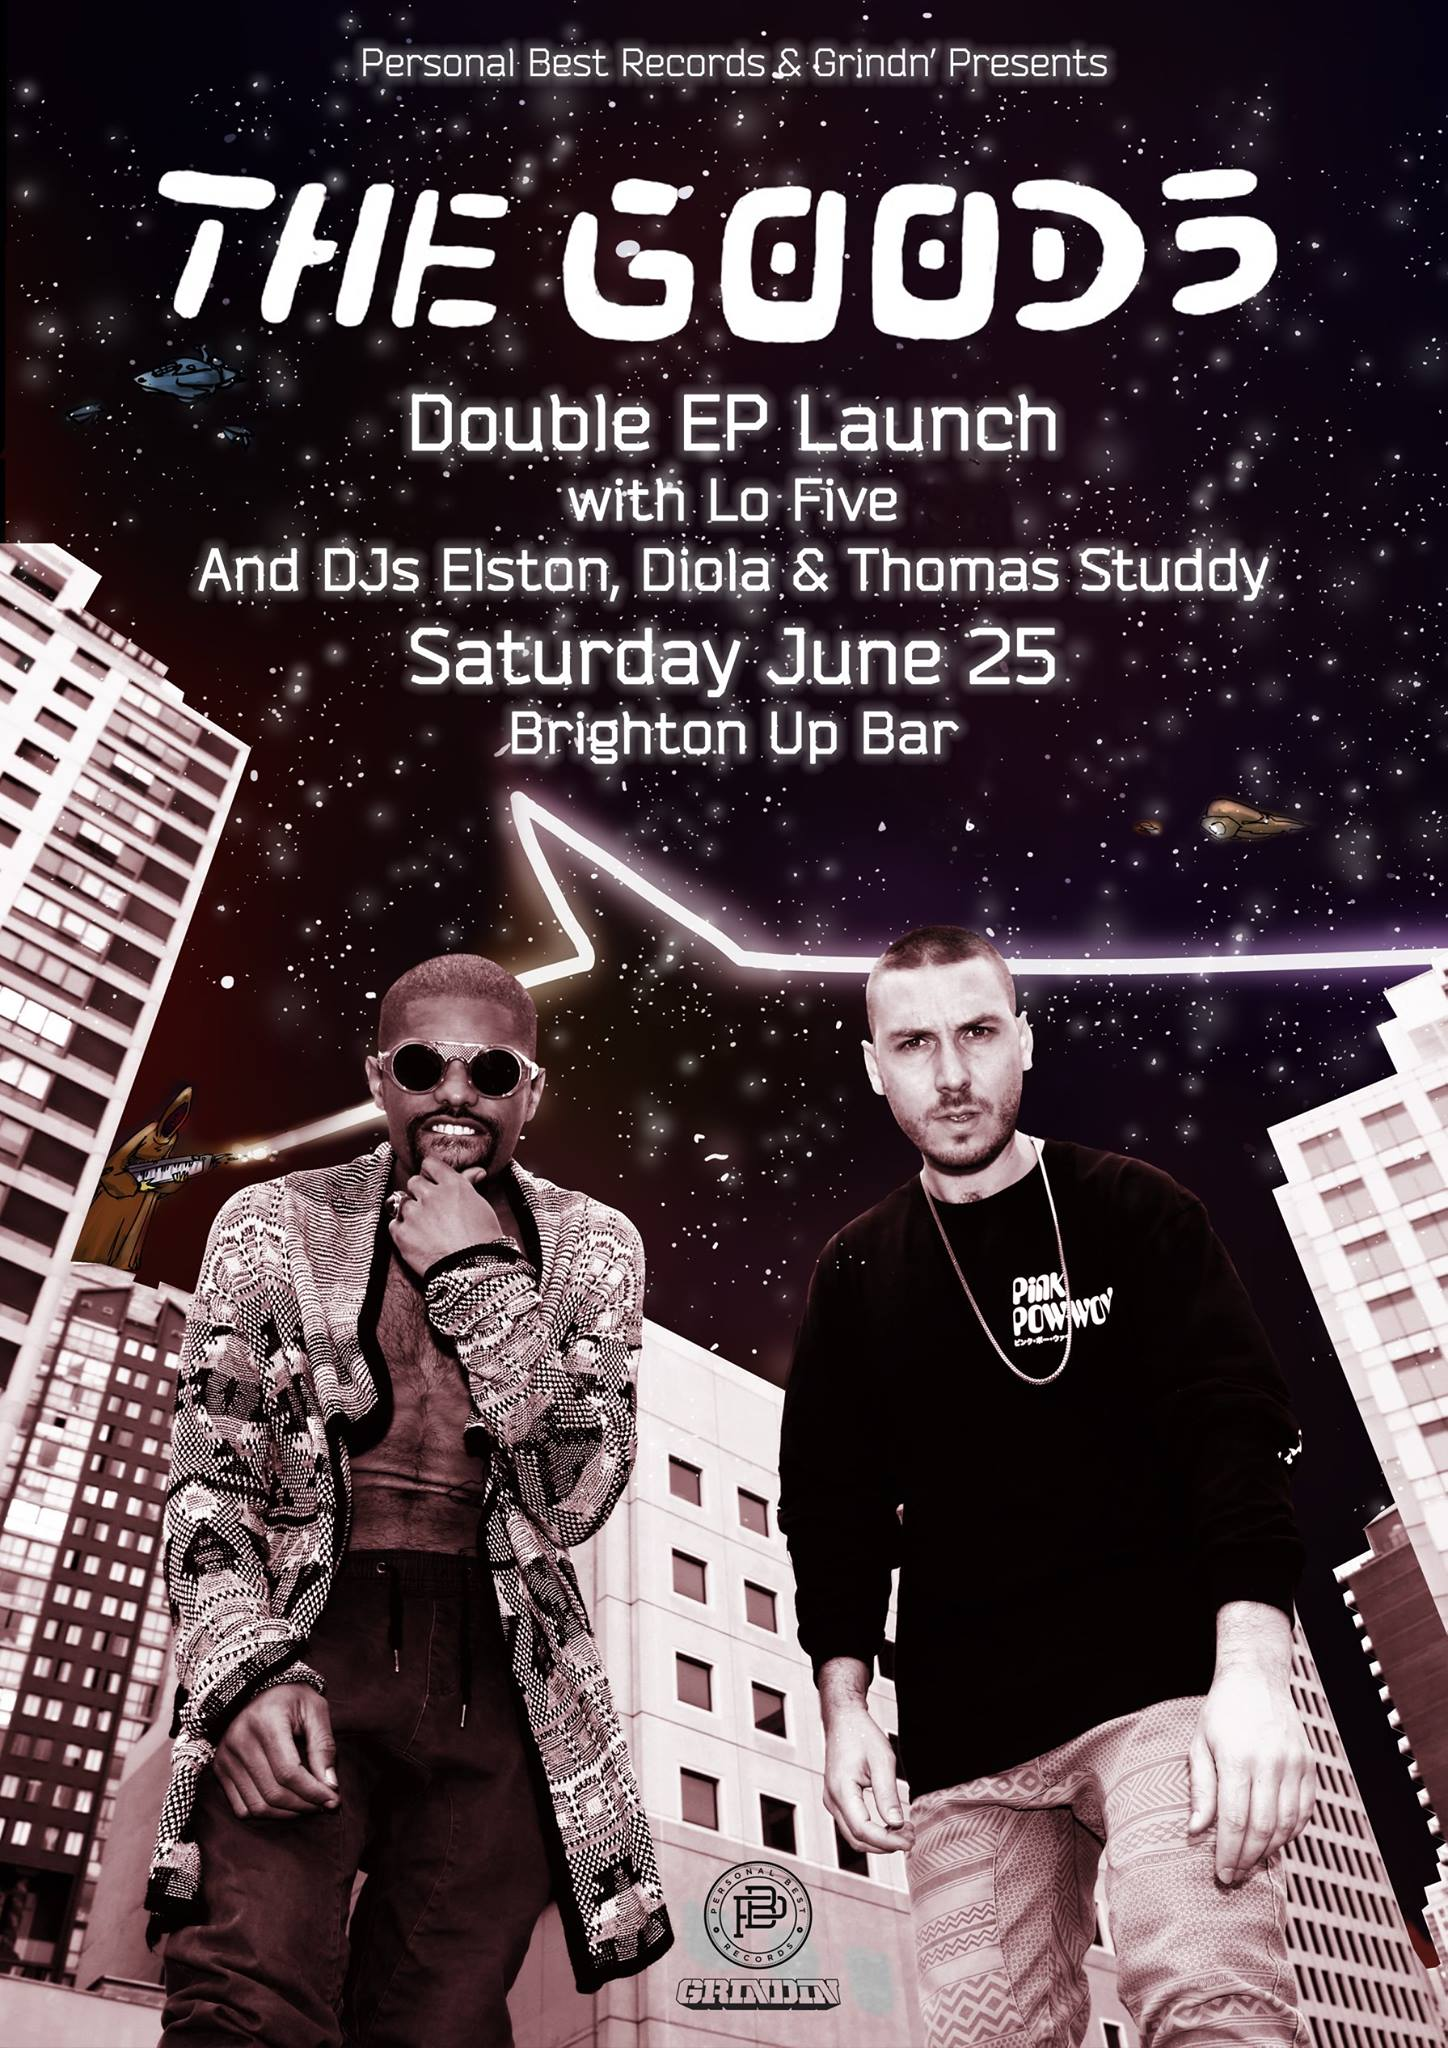 THE GOODS DOUBLE EP LAUNCH